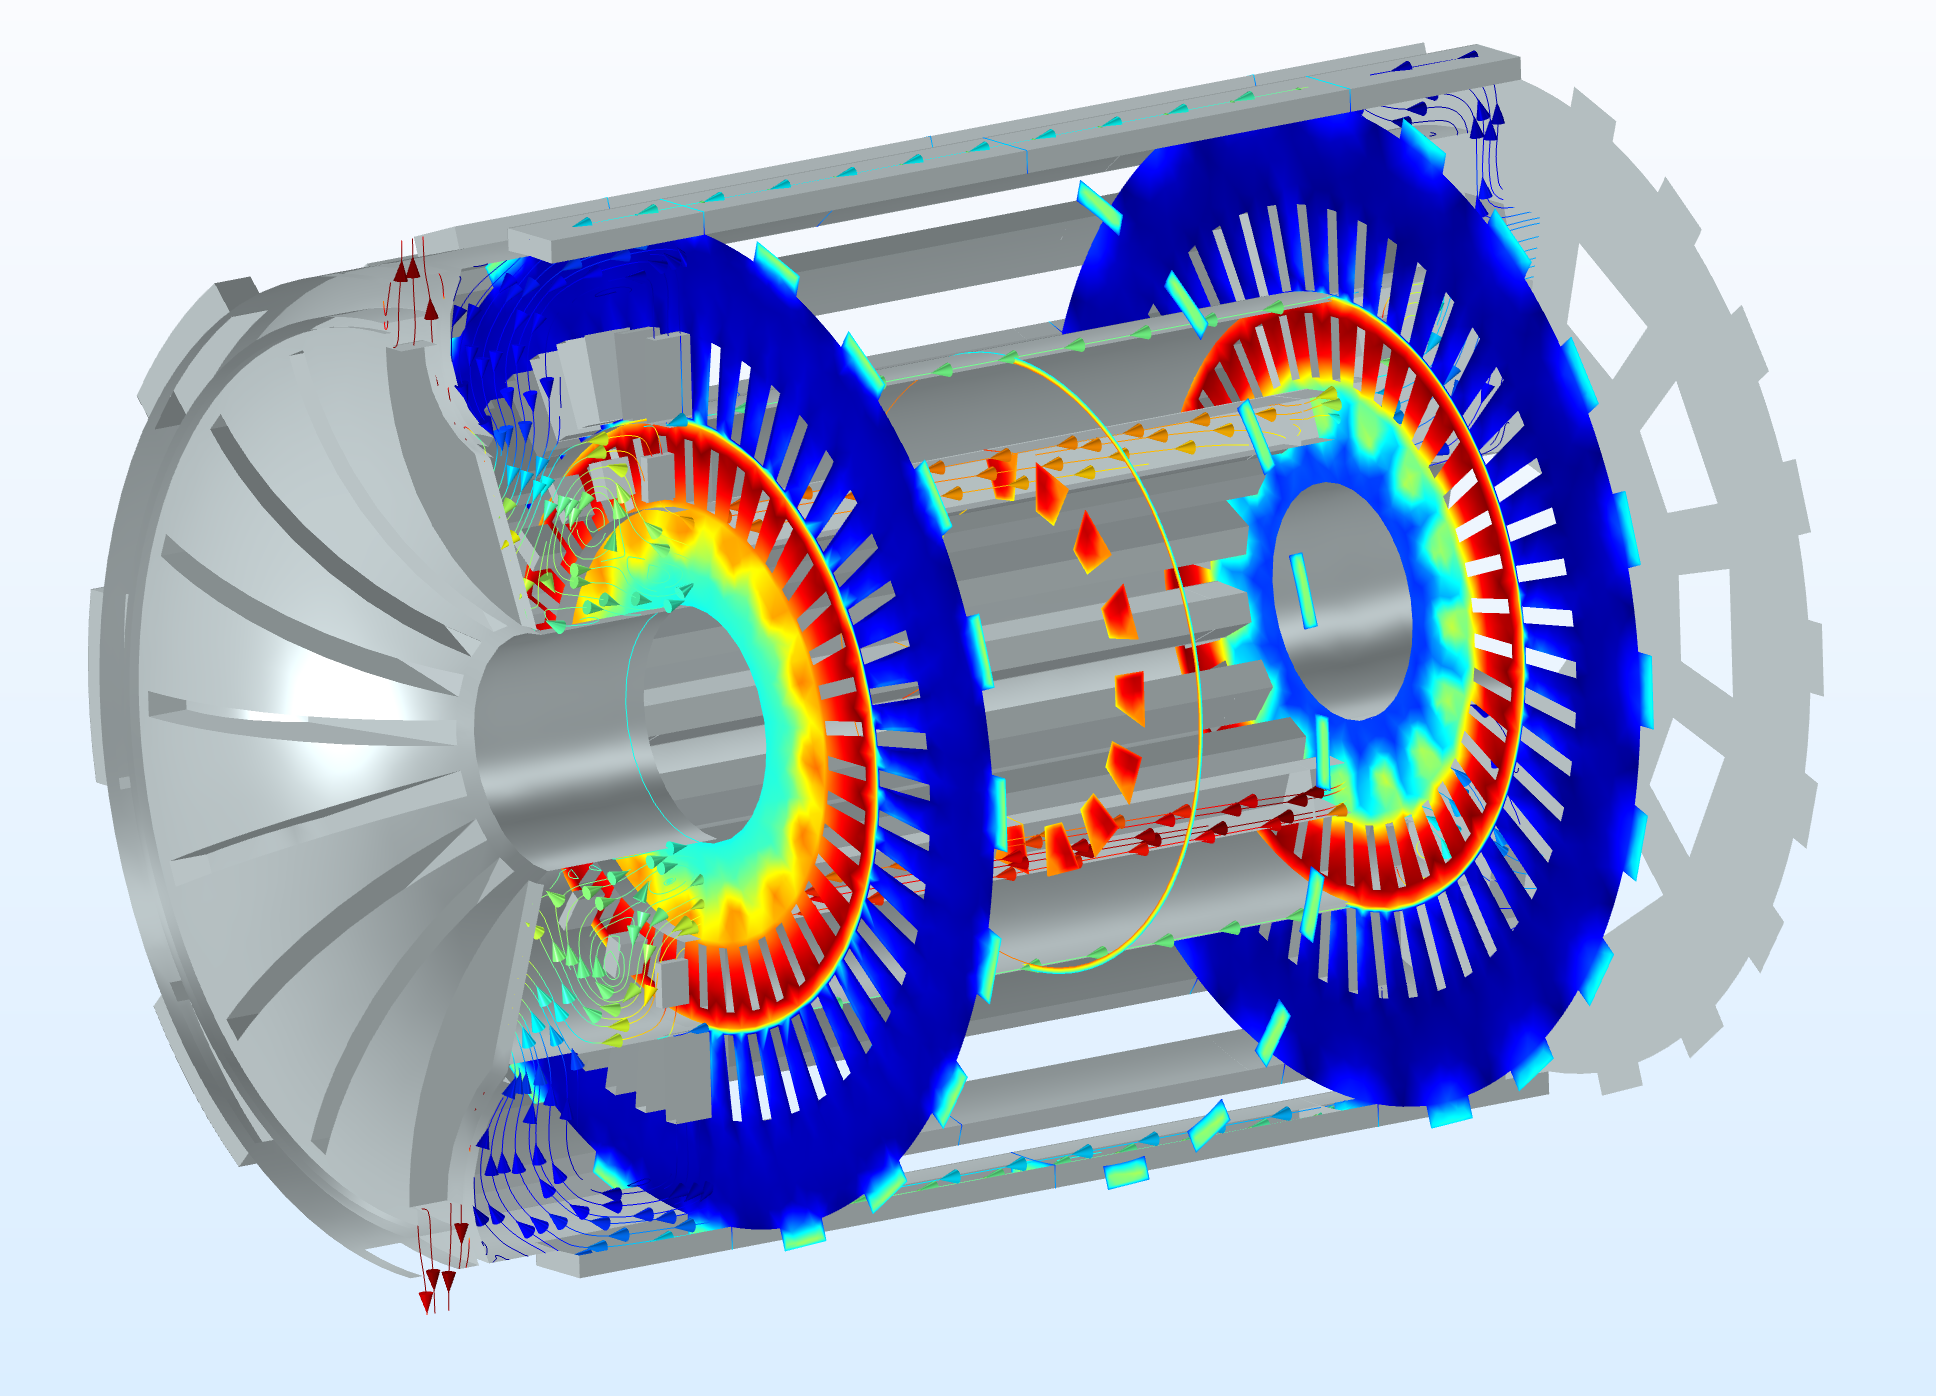 An image of the airflow velocity in an electric motor modeled using COMSOL Multiphysics®.